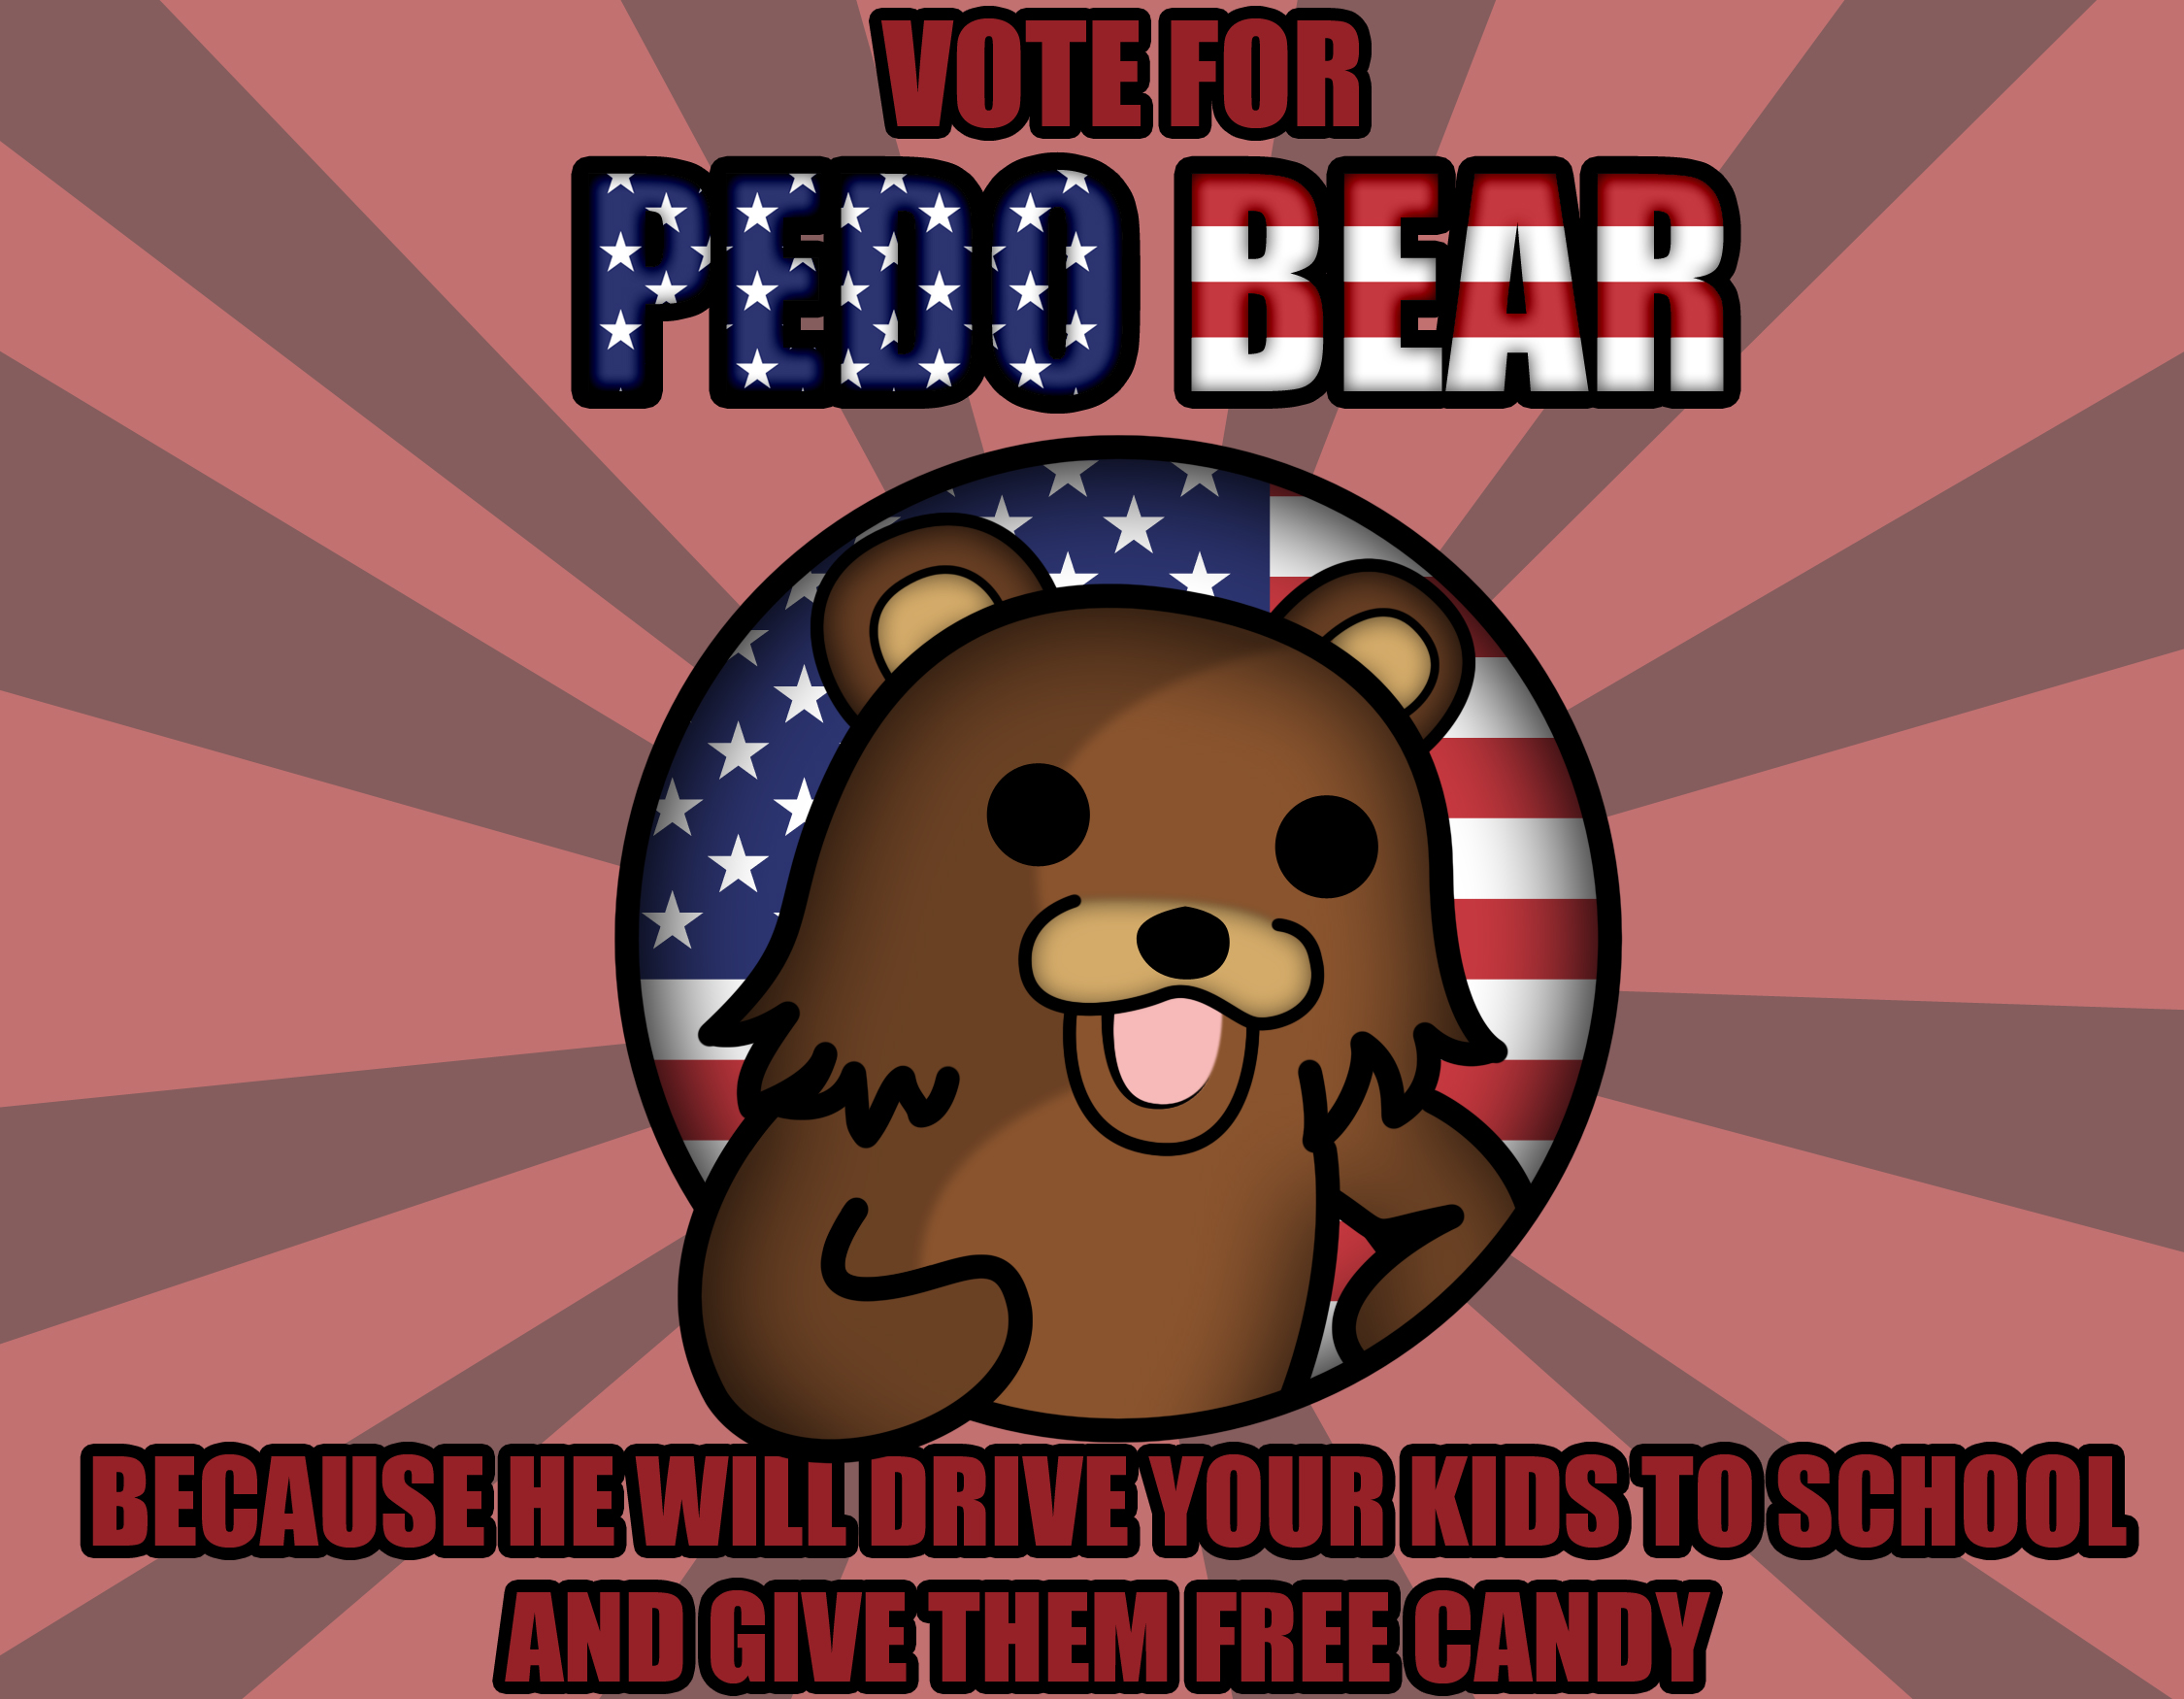 Vote For Pedo bär